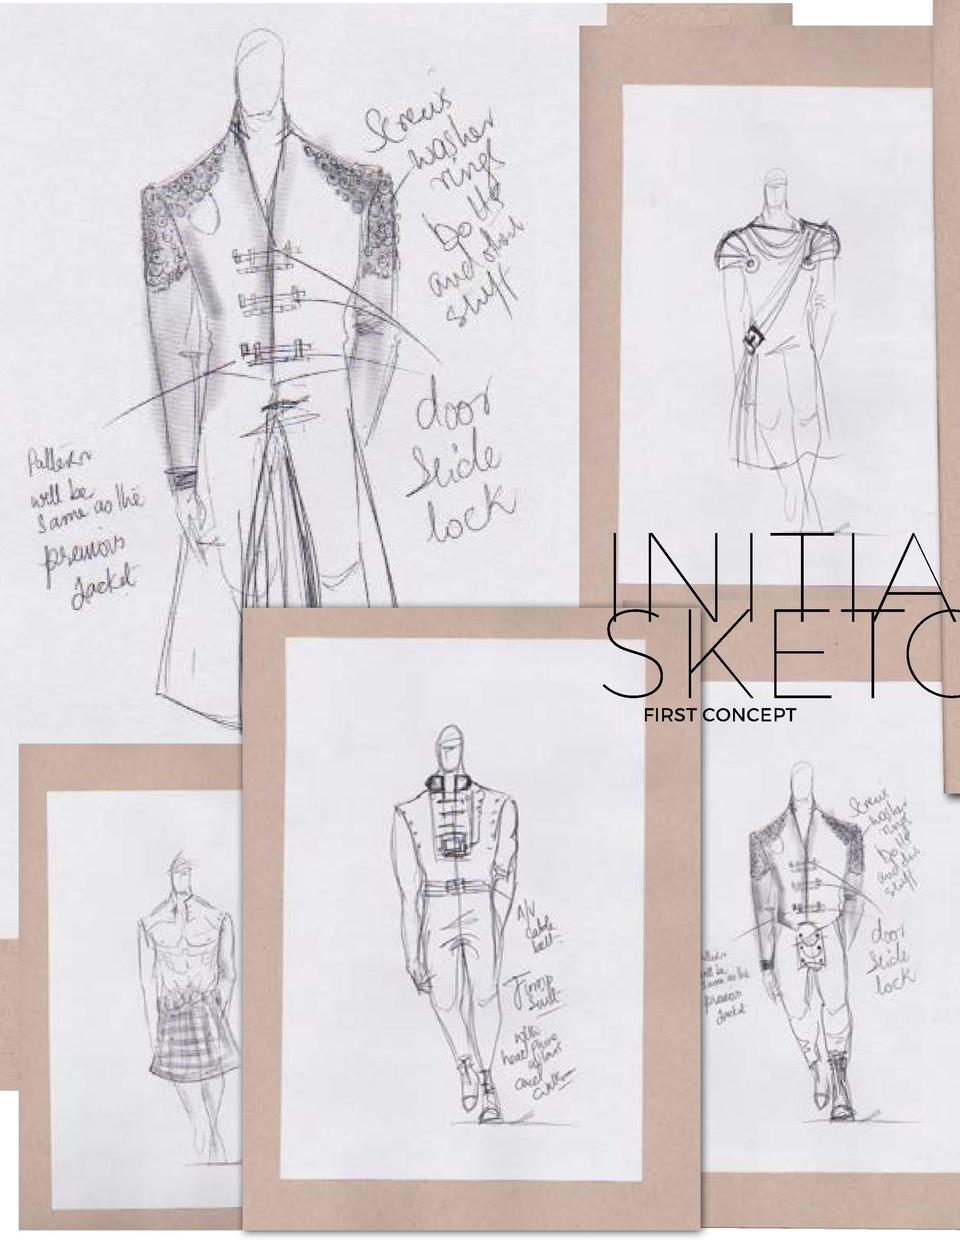 INITIAL SKETCHES FIRST CONCEPT